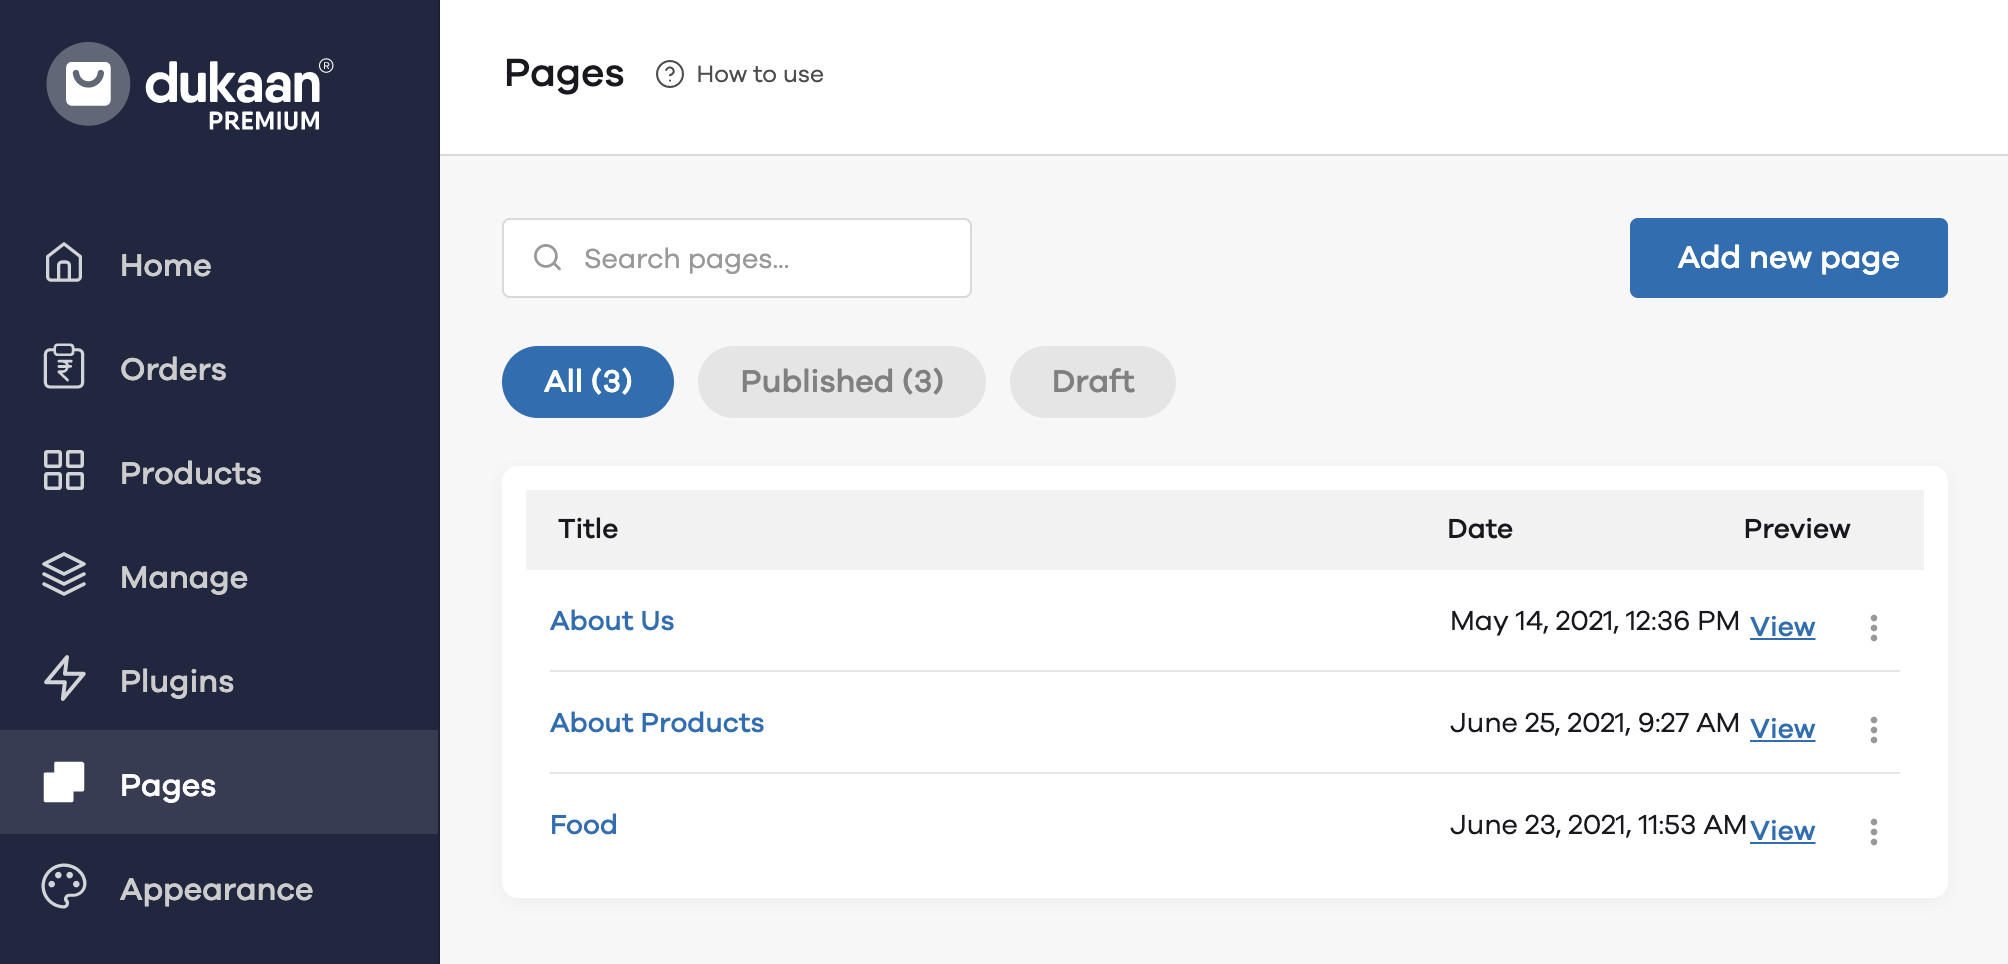 How to create pages on Dukaan